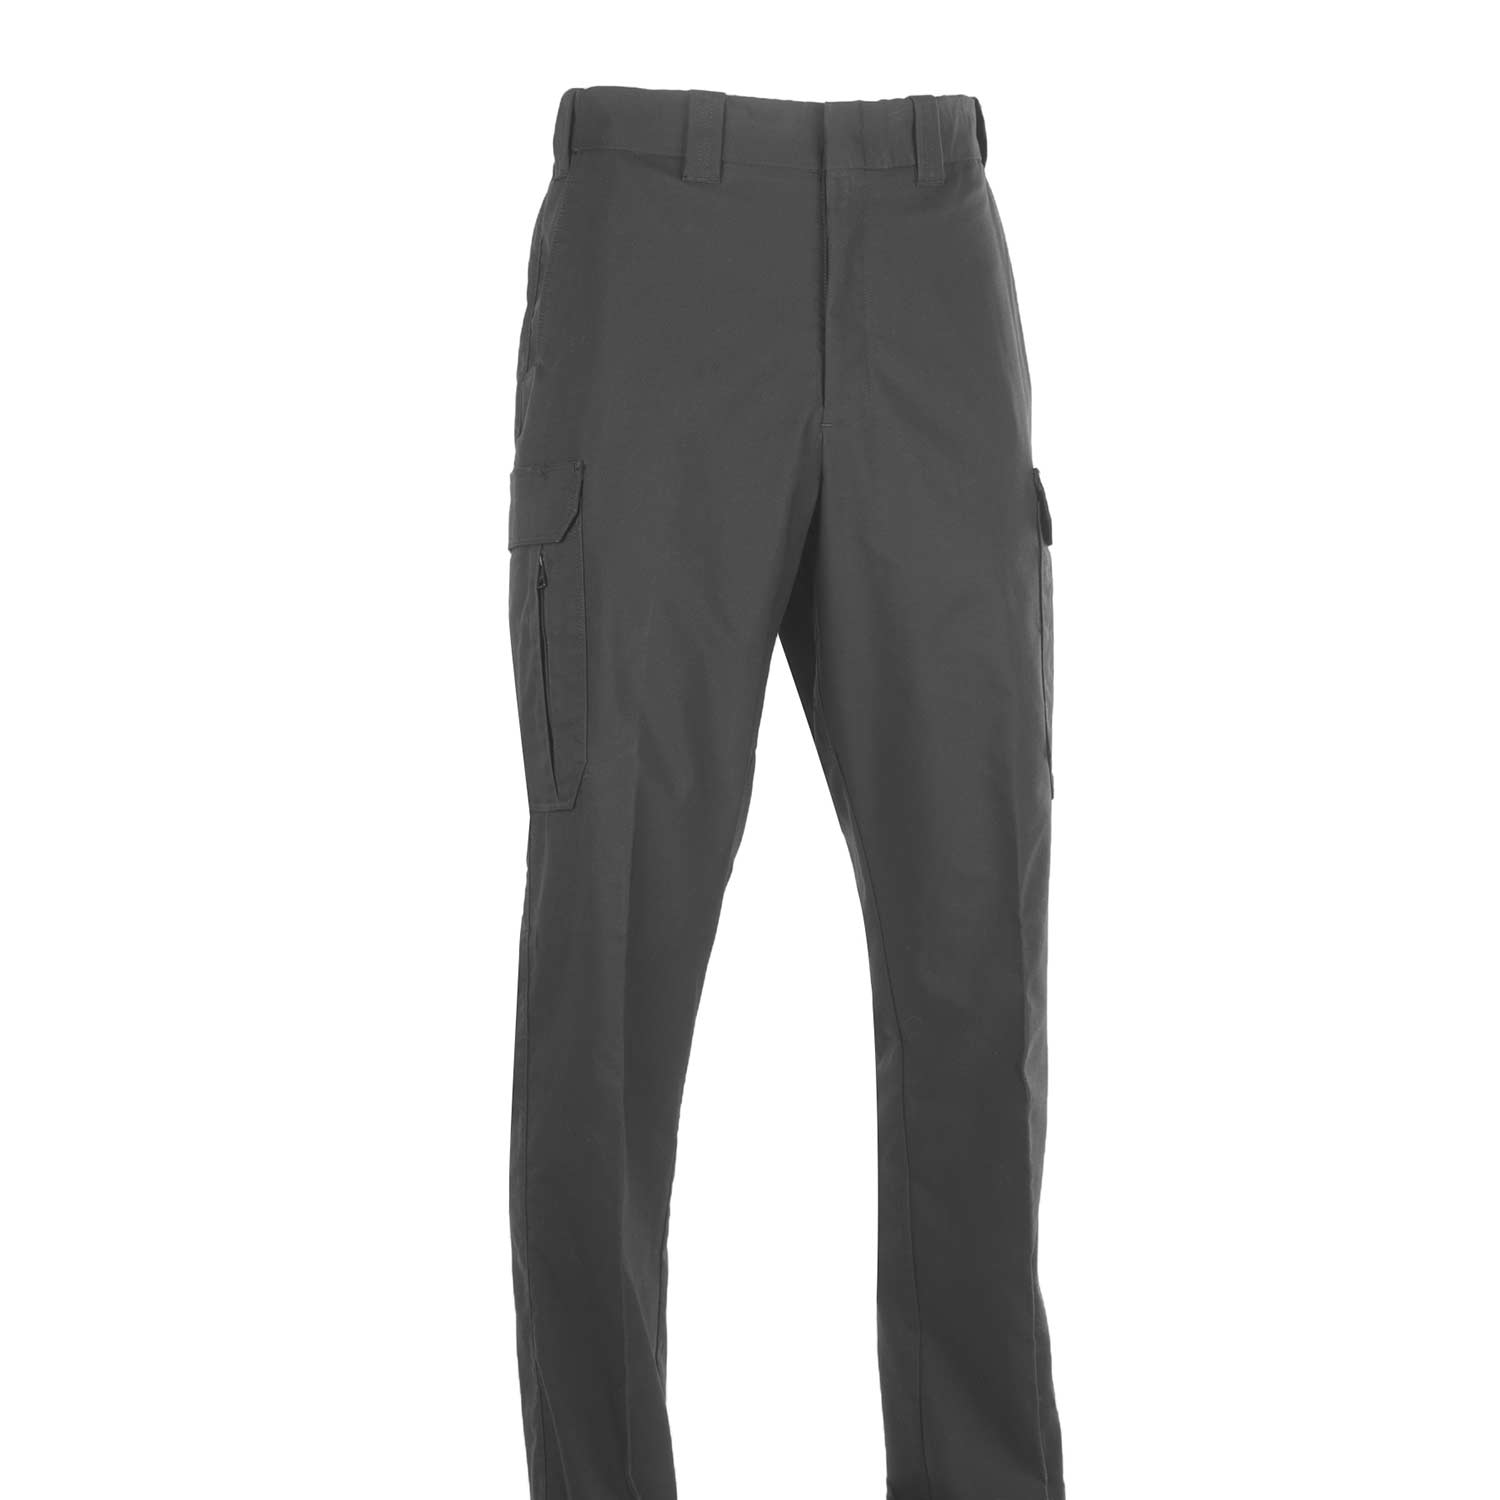 Cross Fx Elite Class B Style Uniform Pants by Flying Cross